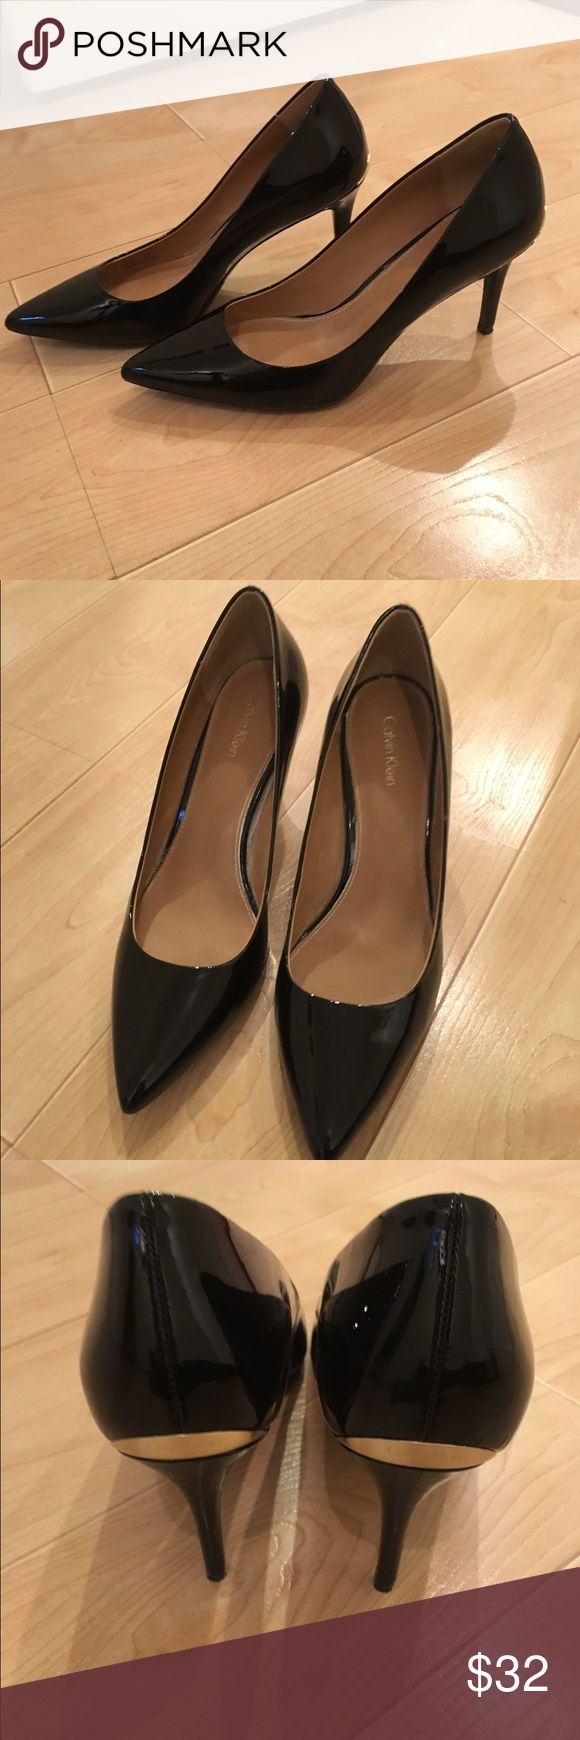 Calvin Klein black patent leather shoes! These black Calvin Klein patent leather shoes are new this season and in excellent condition! They are very comfortable and pair well with any outfit. There are gold accents on the back of the shoe (as shown). Calvin Klein Shoes Heels